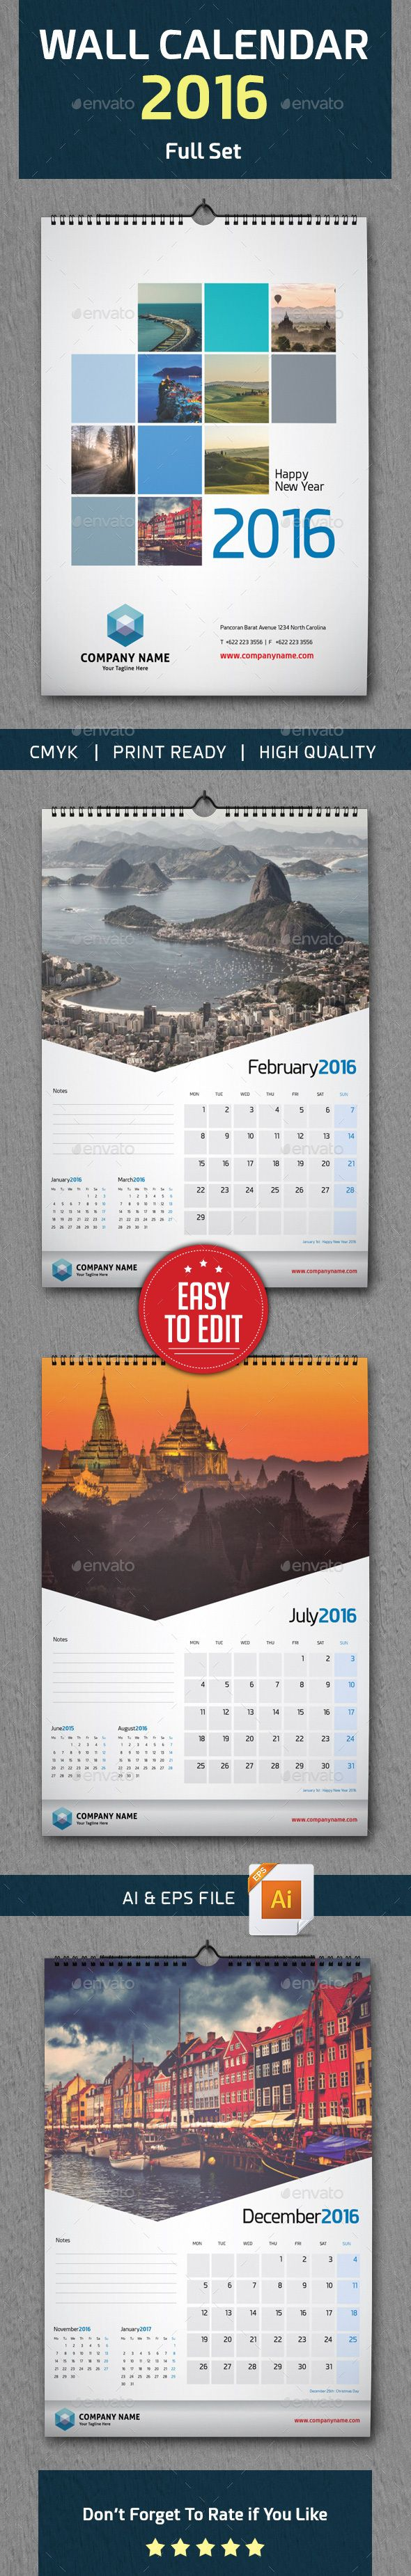 Calendar Design Layout : Best corporate calendar design images on pinterest